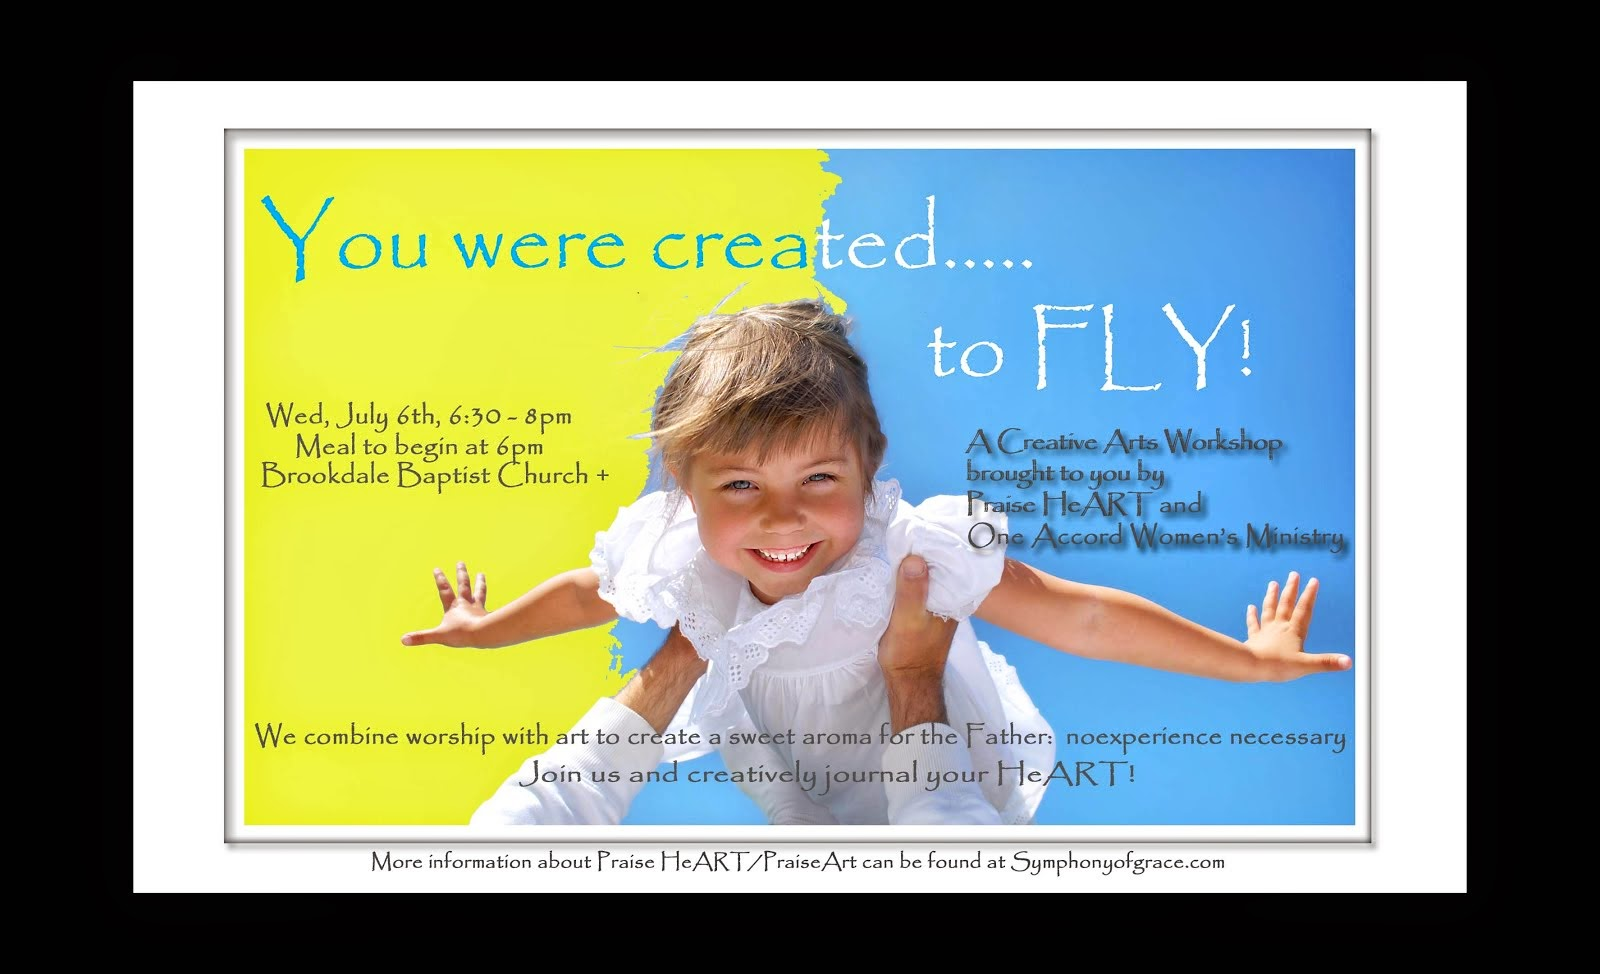 Created to Fly!